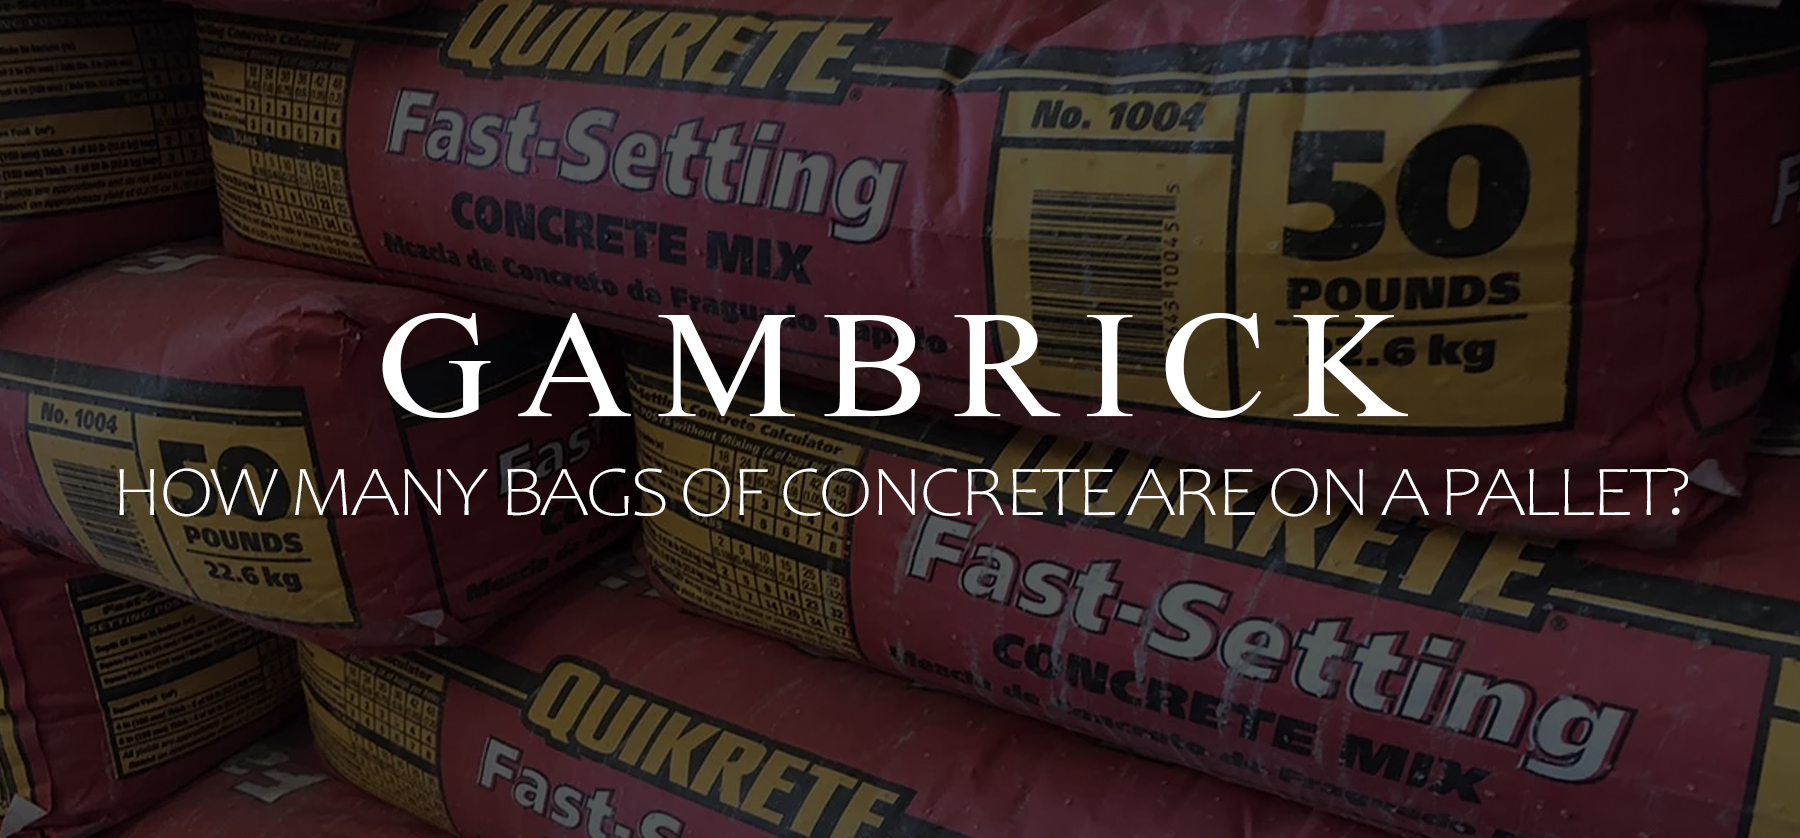 how many bags of concrete are on a pallet banner pic